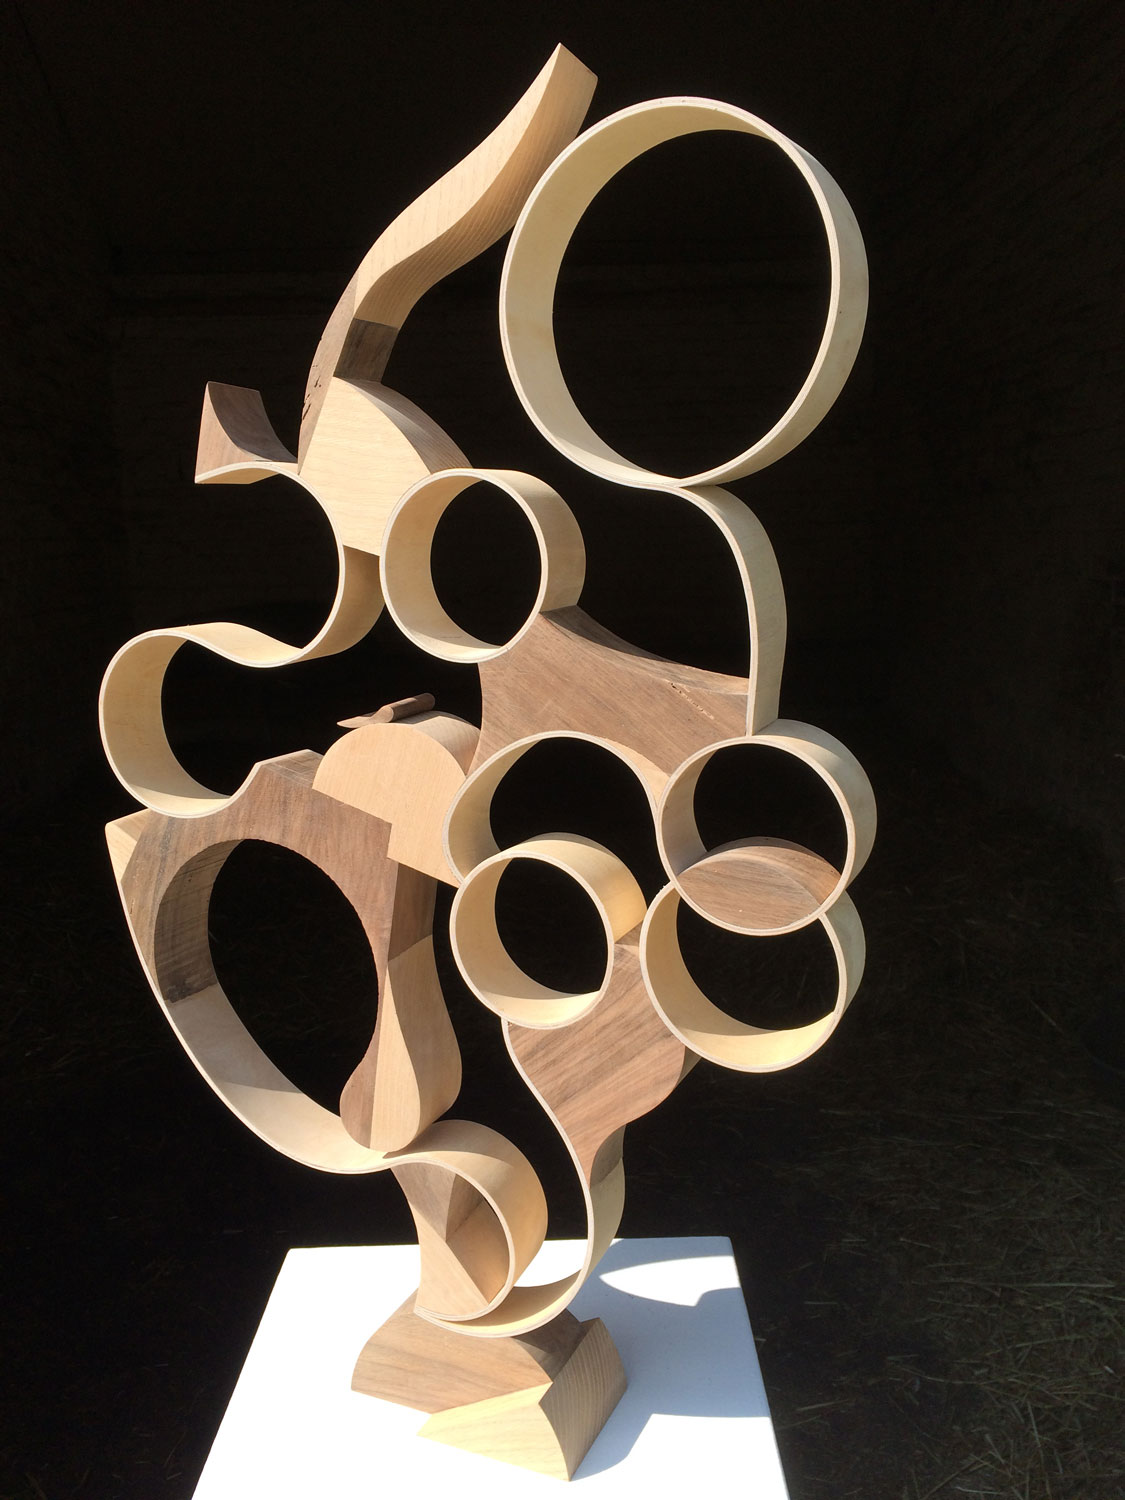 Wood and plywwod sculpture 'Morning Glory'